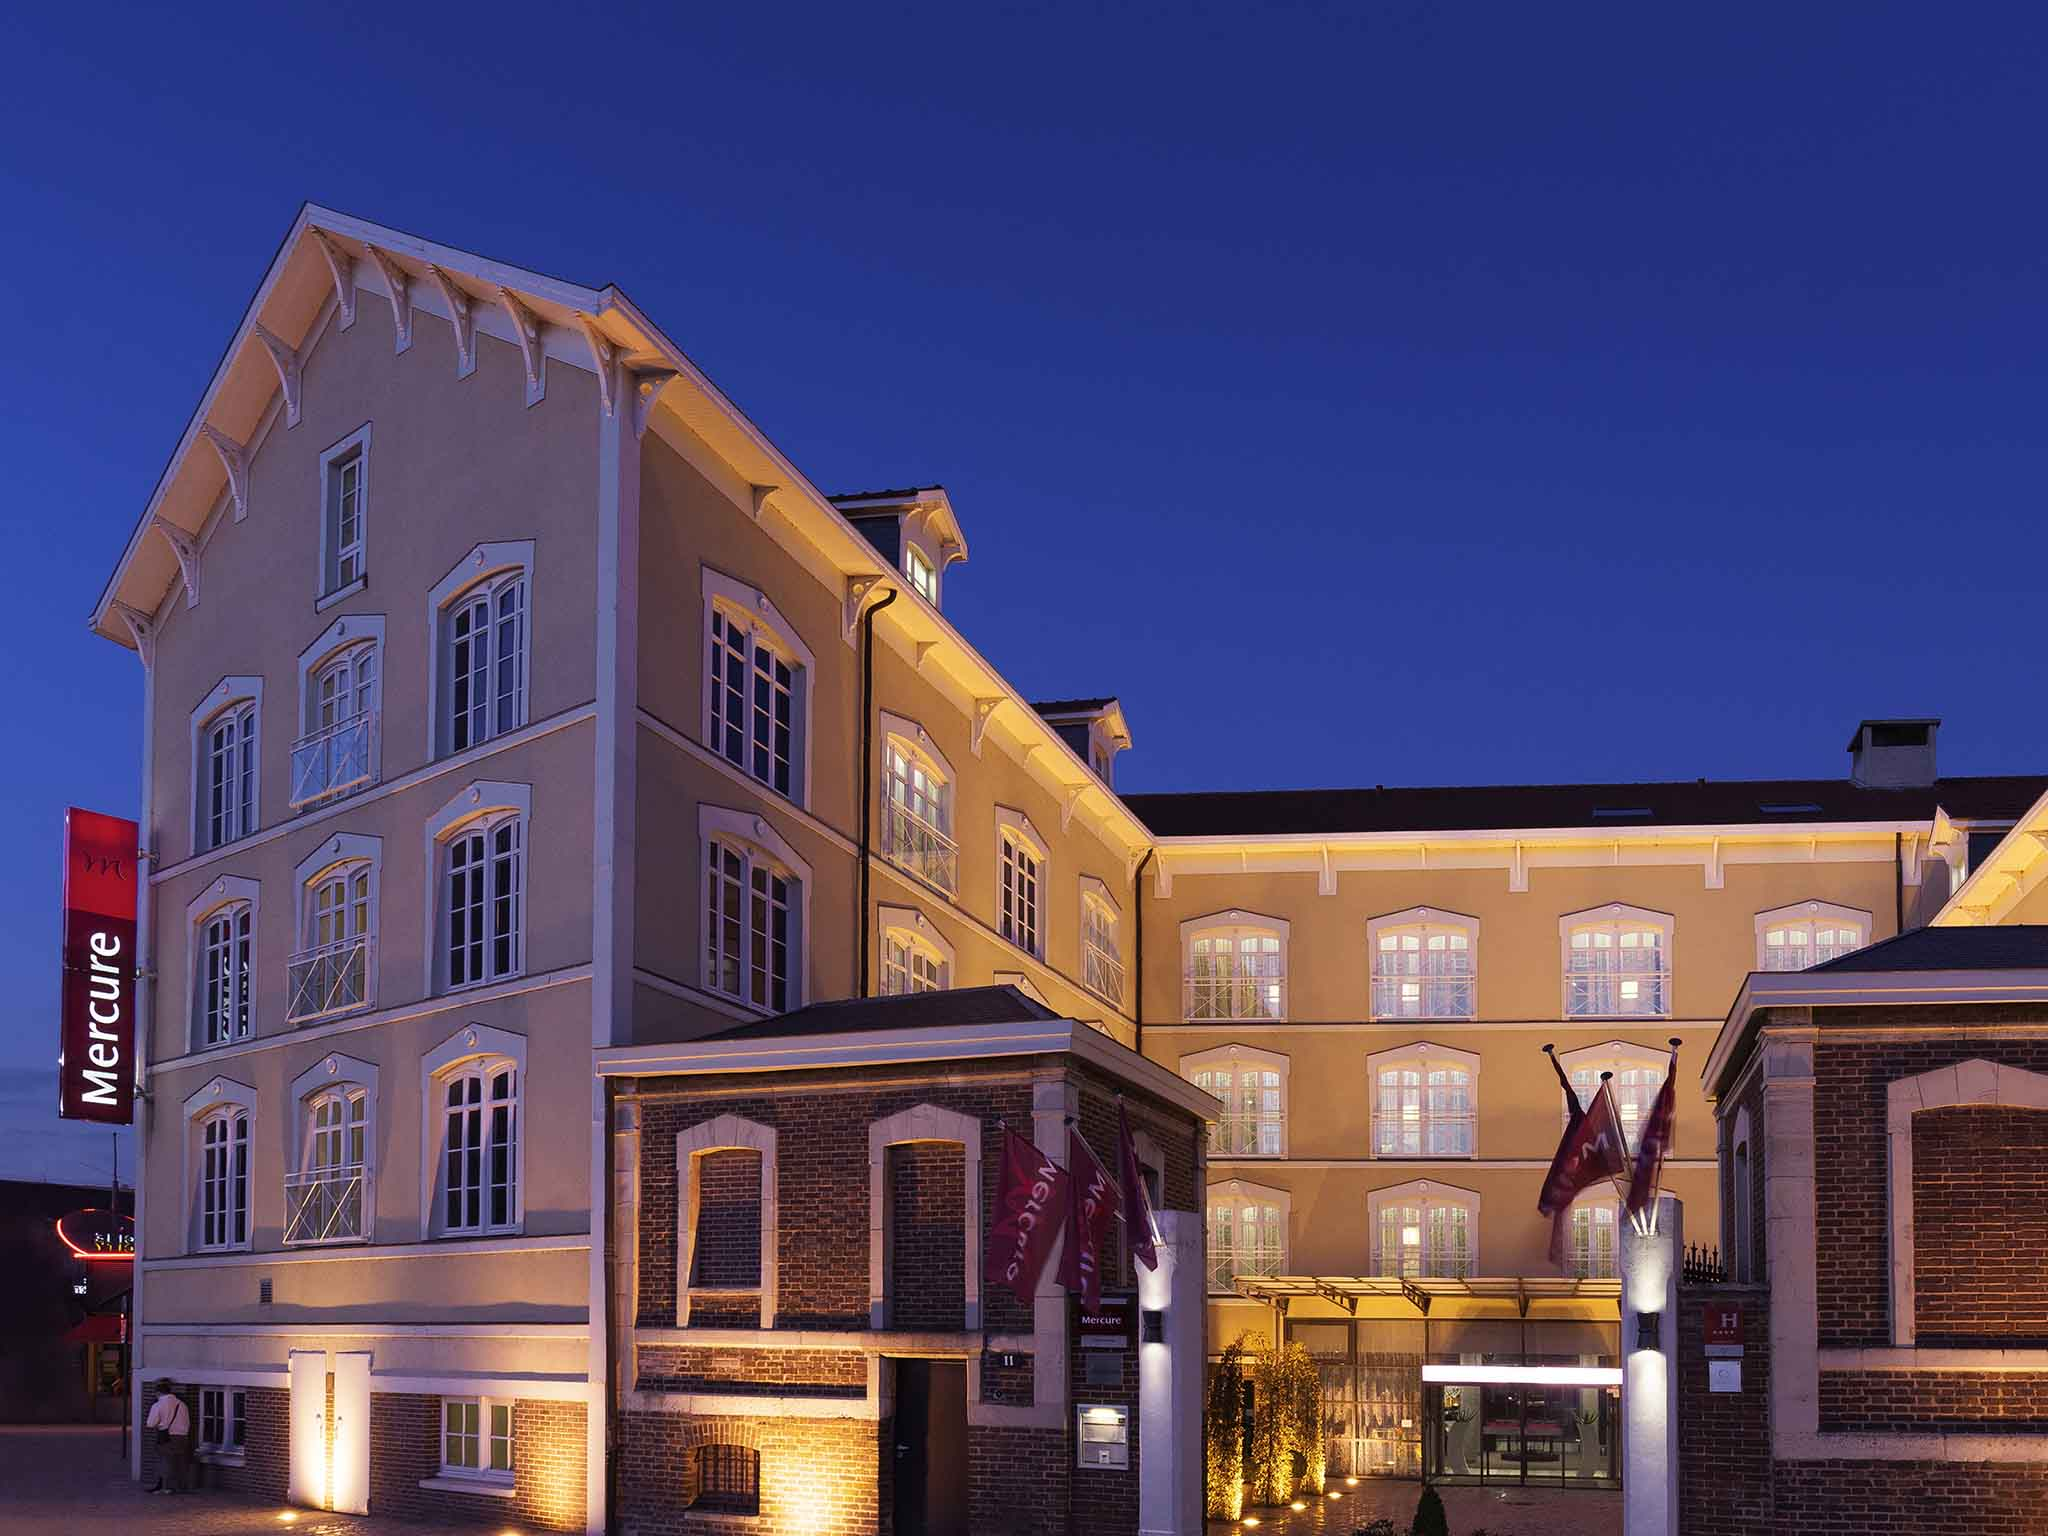 Hotel - Mercure Troyes Centre Hotel